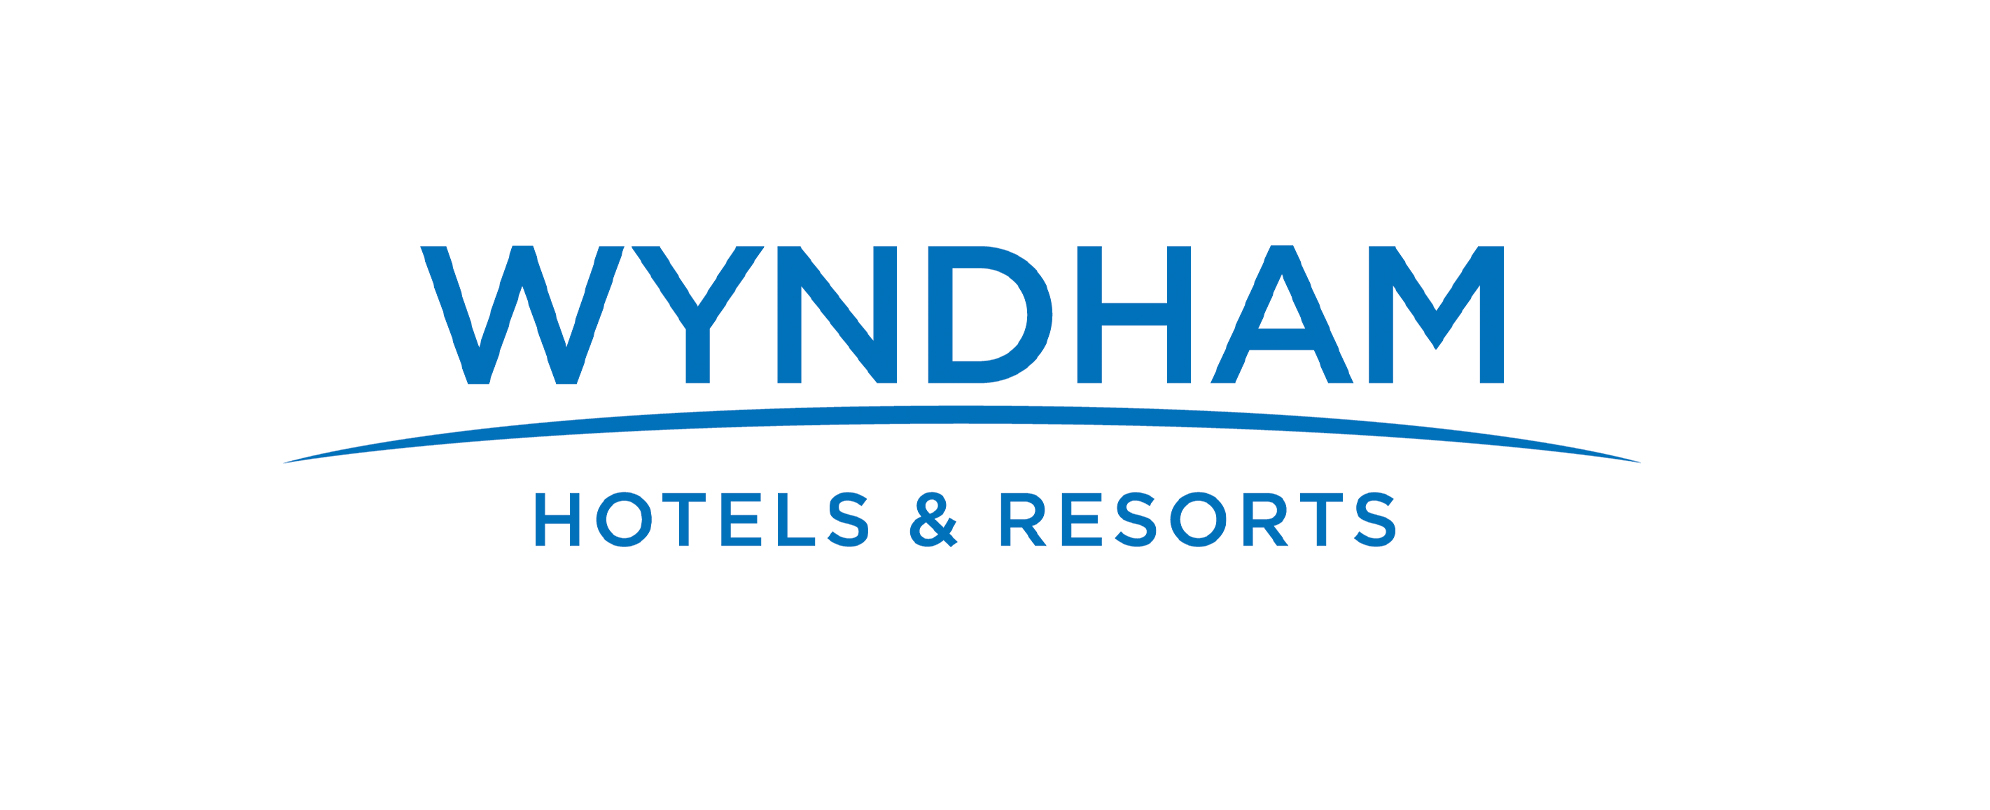 Wyndham Hotels & Resorts logo.